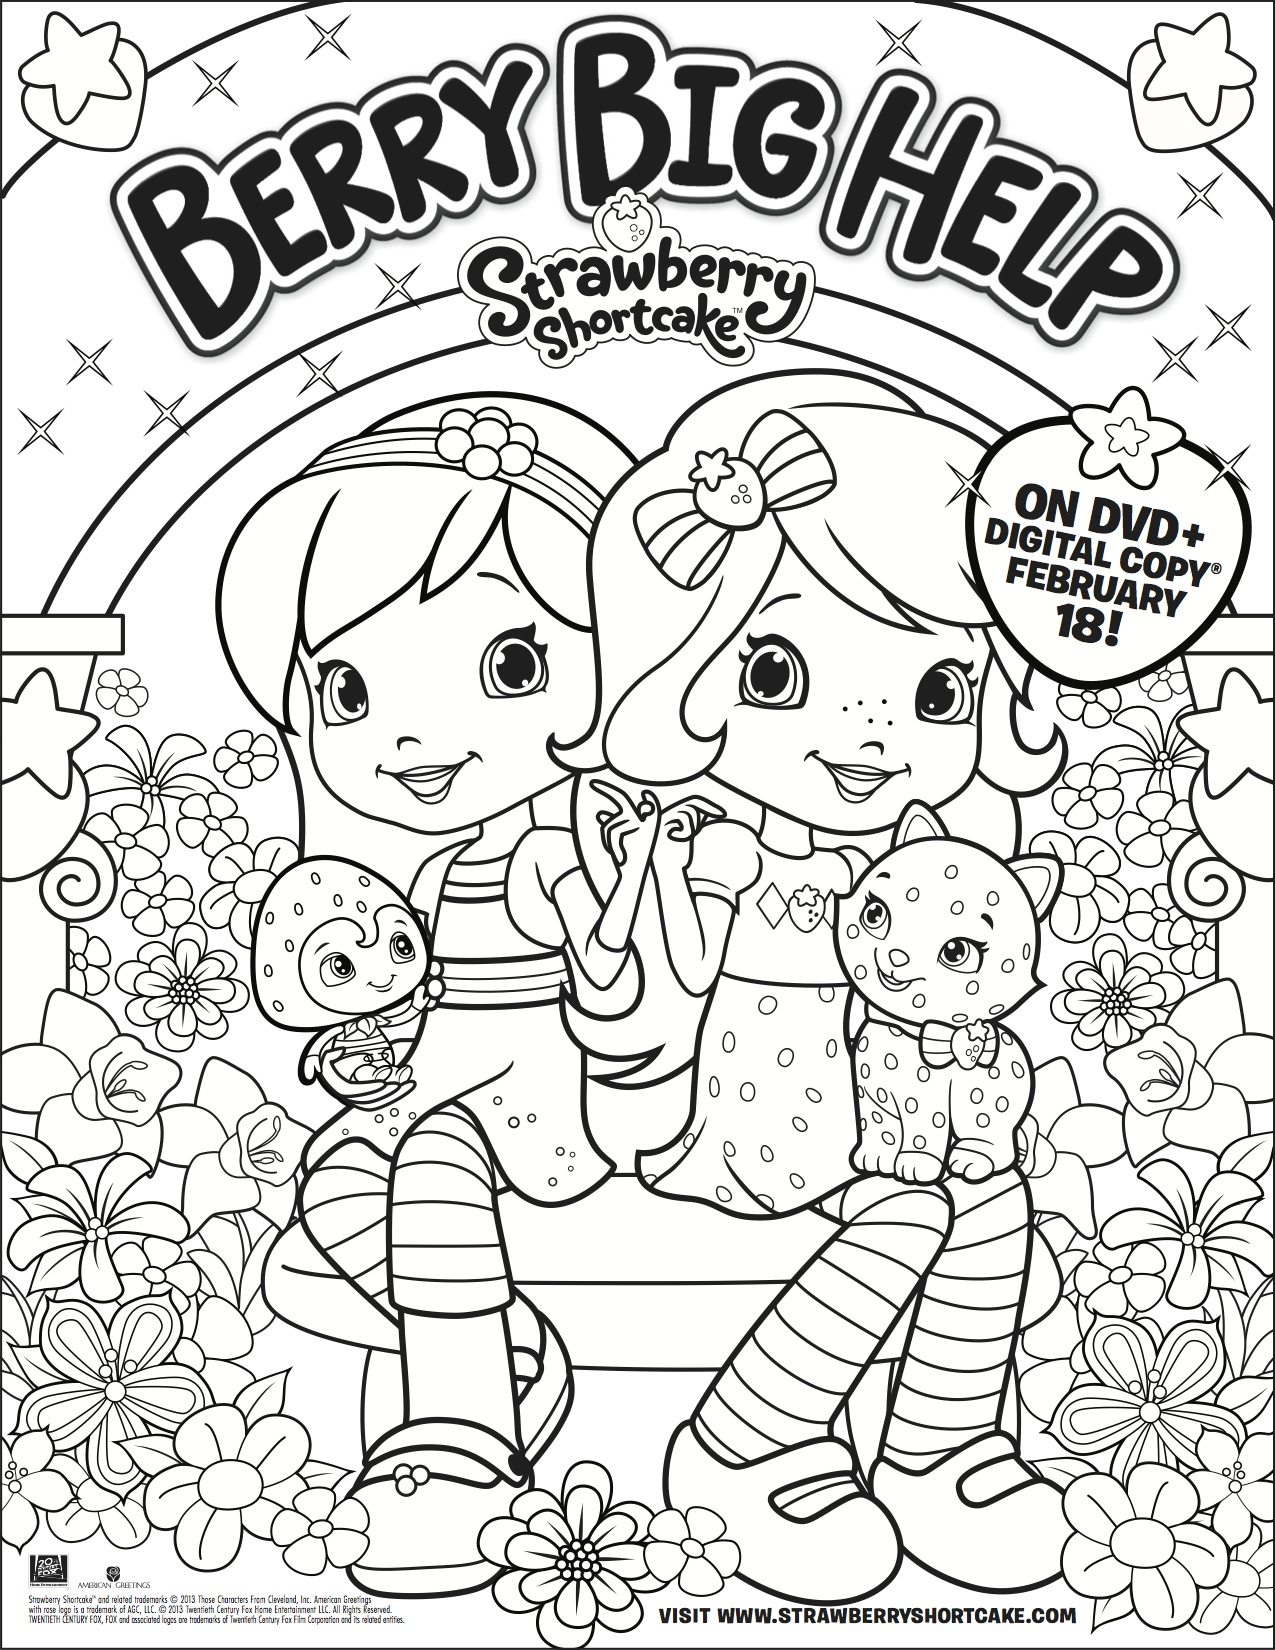 Strawberry Shortcake DVD and Strawberry Shortcake Coloring